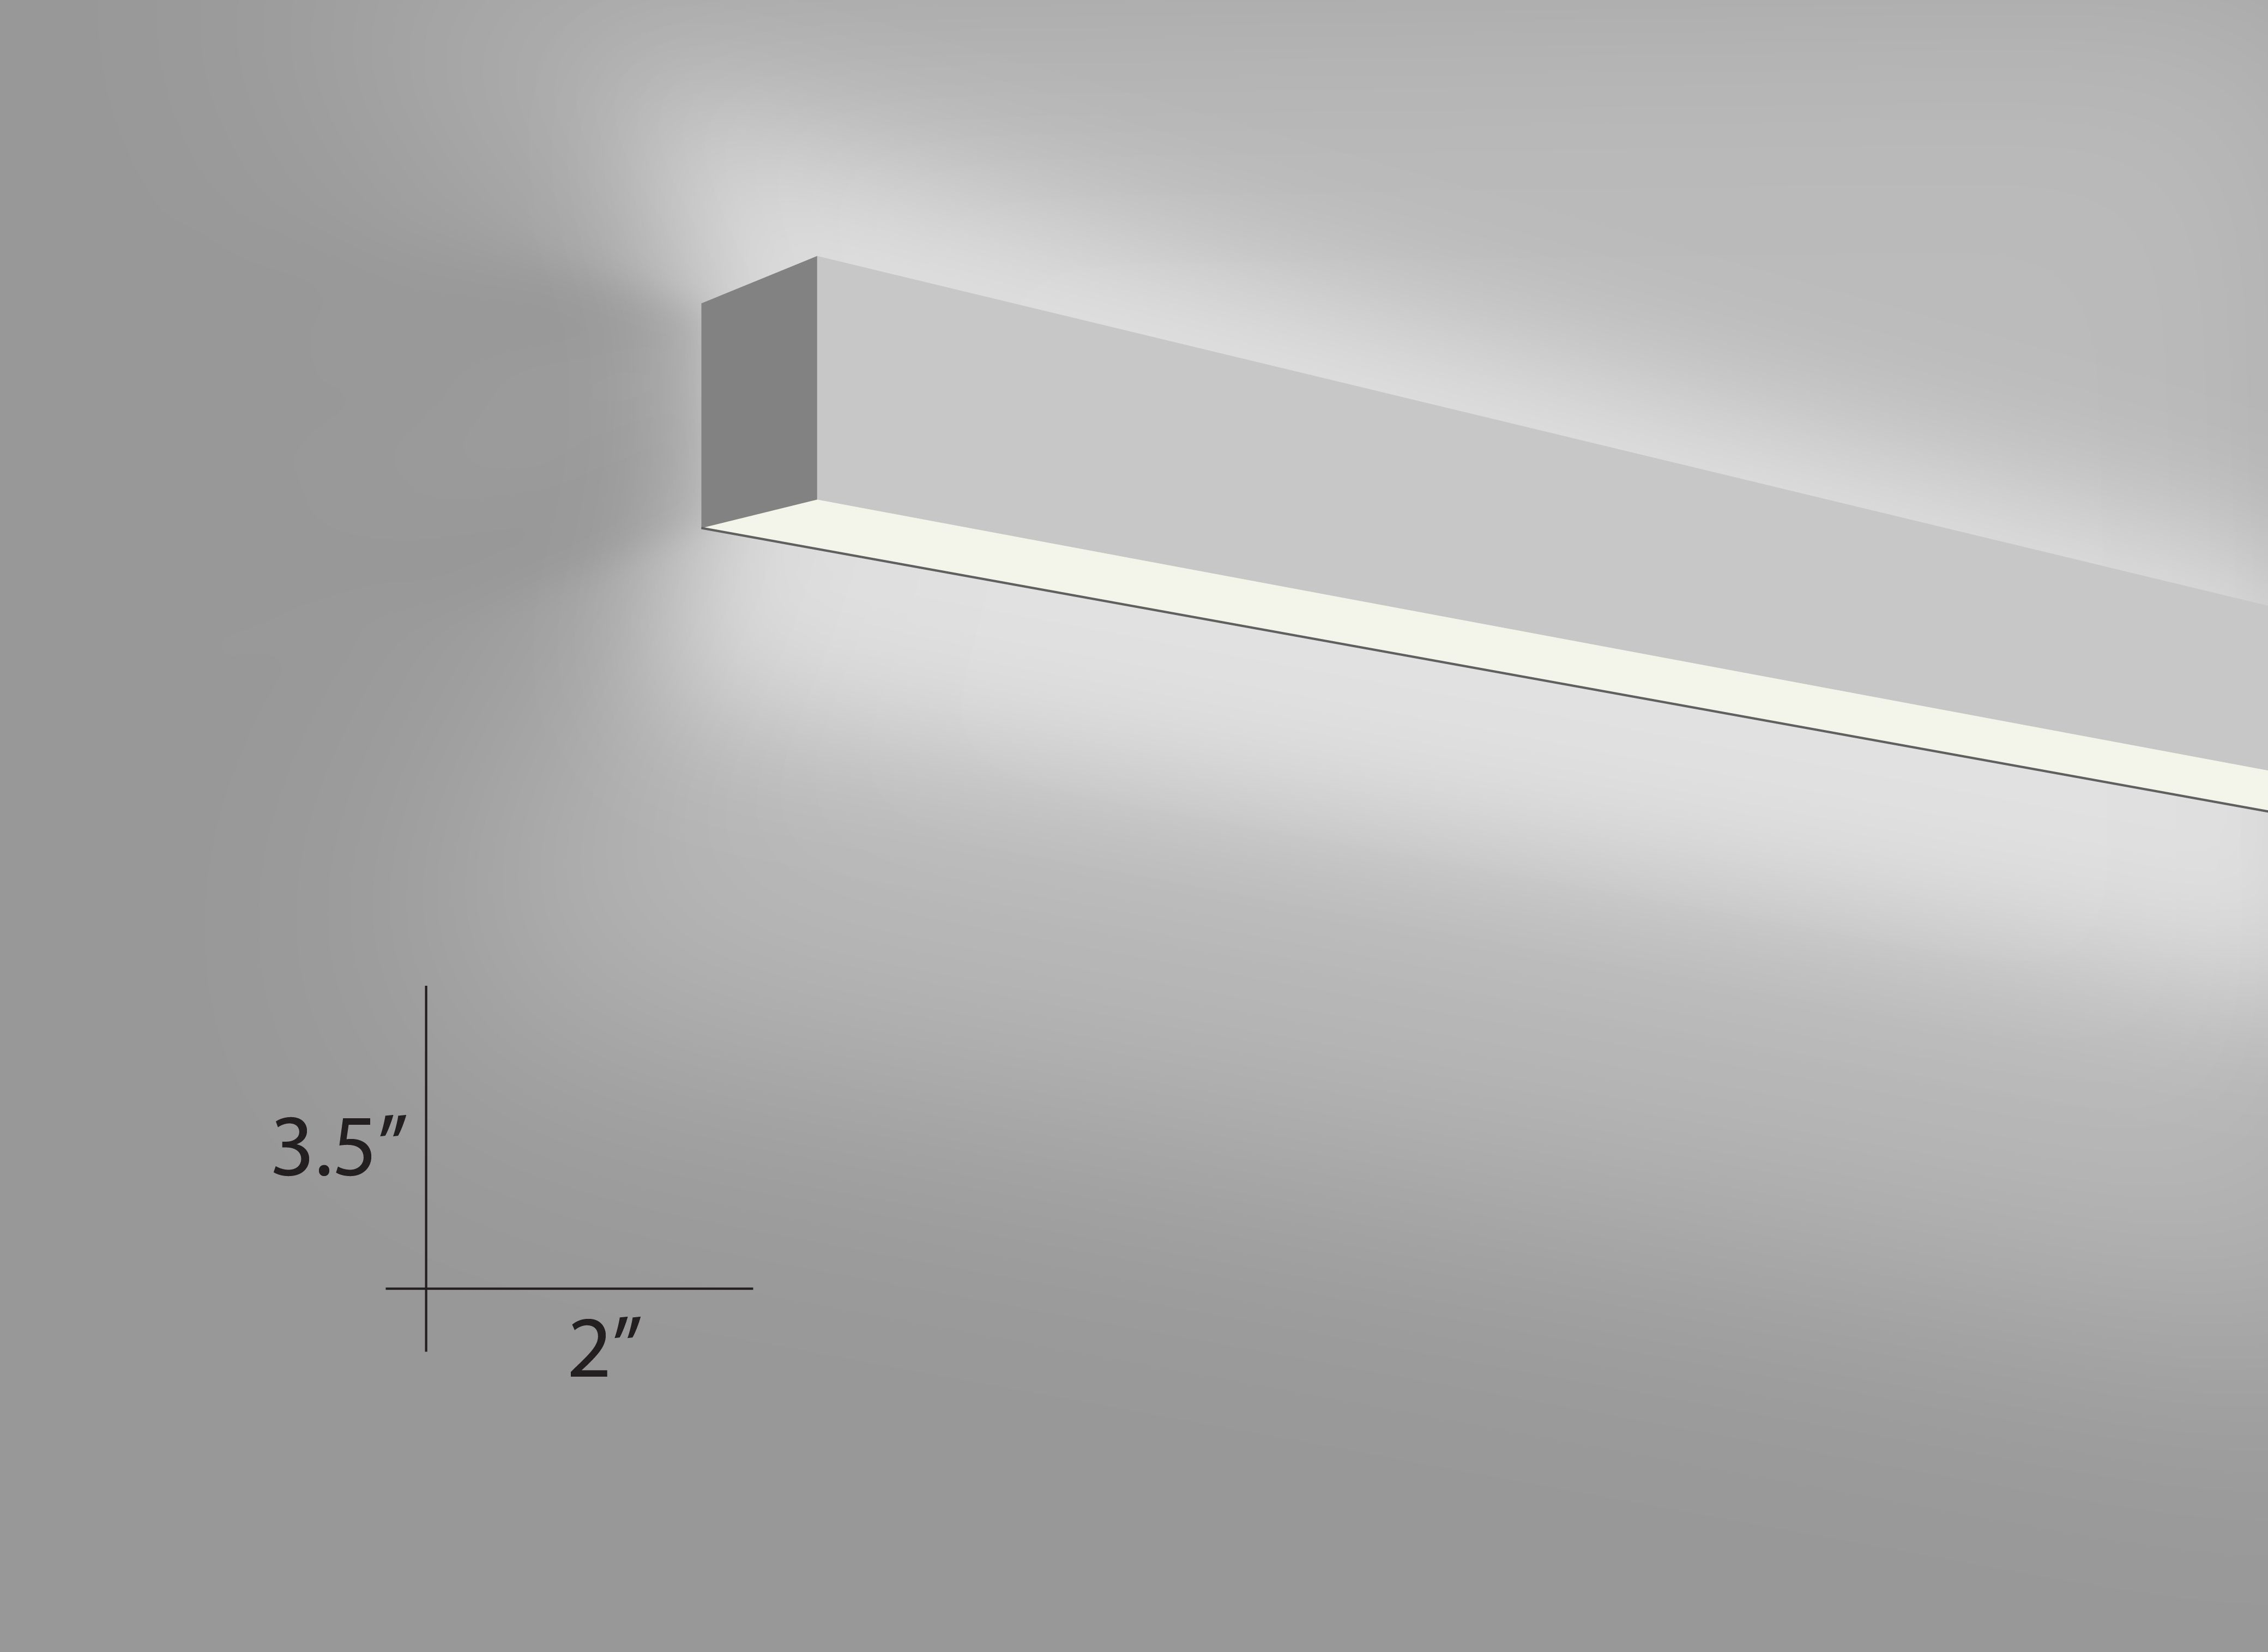 Alcon Lighting 12100 20 W Continuum 20 Architectural Direct And Indirect Led Linear Wall Mount Linear Light Fixture Linear Lighting Indoor Wall Light Fixtures